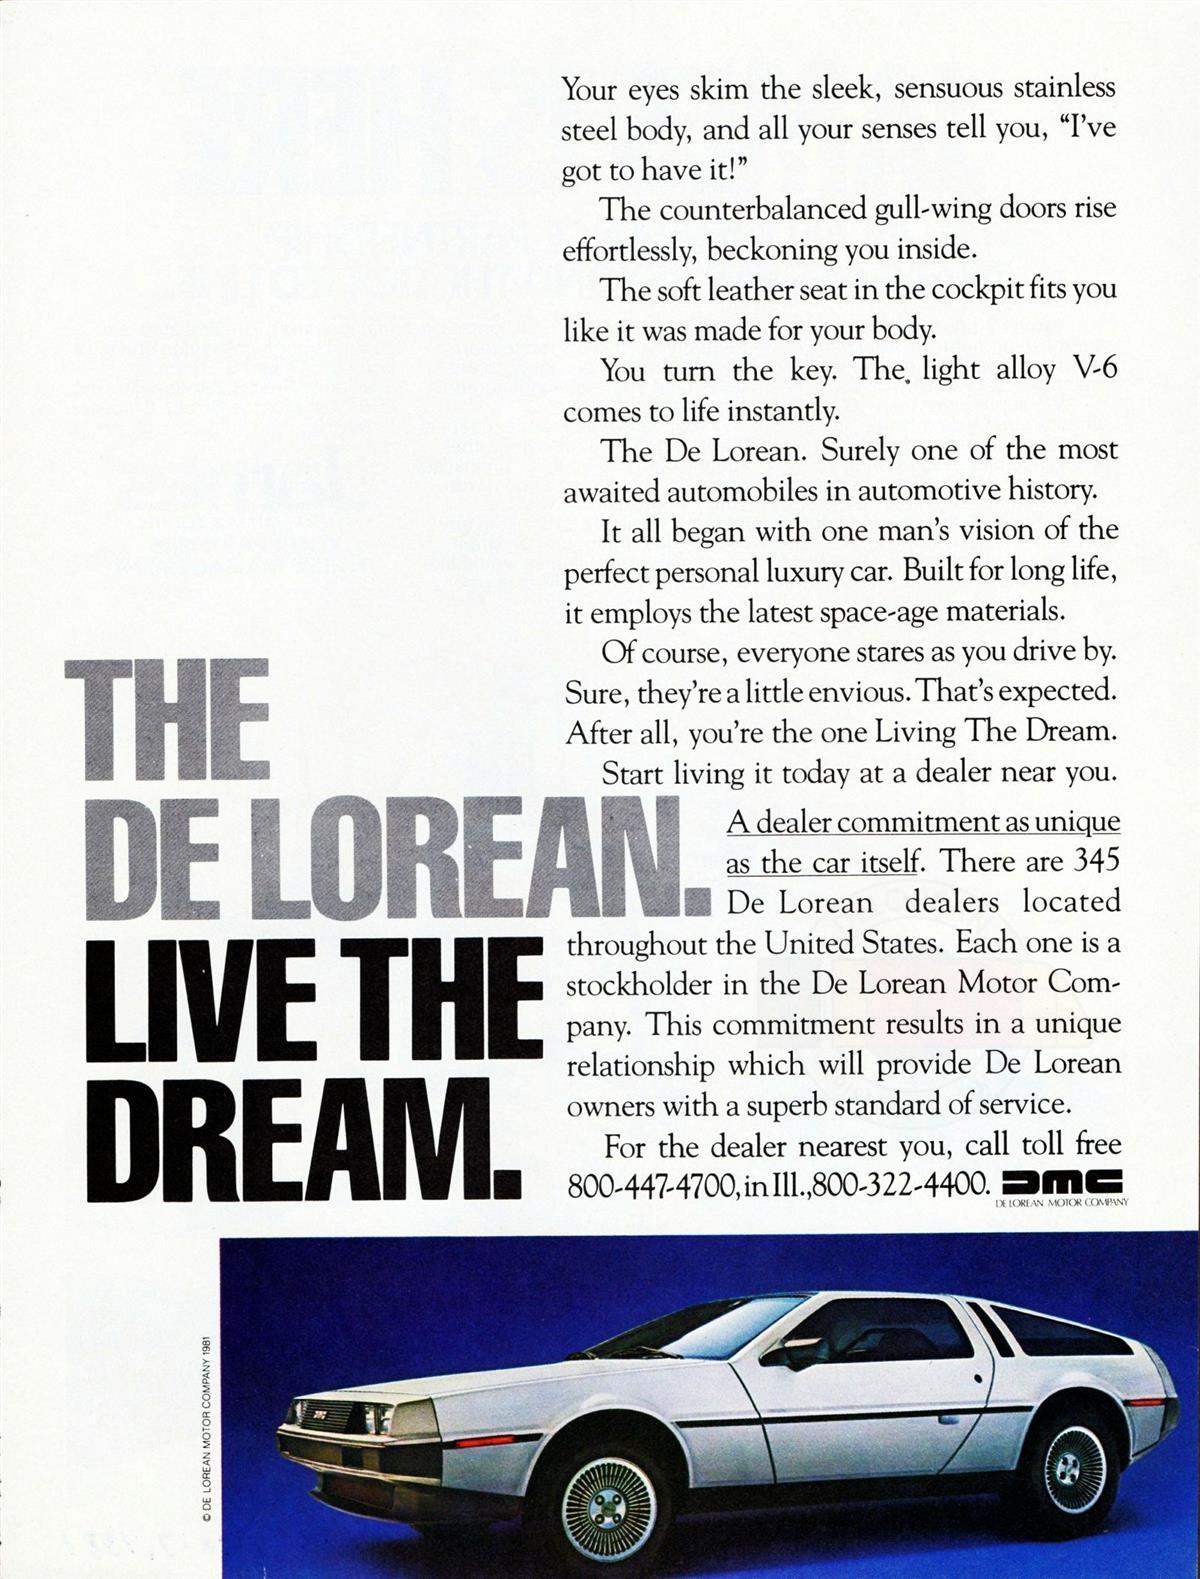 The De Lorean - Live The Dream ad | DeLoreanDirectory.com